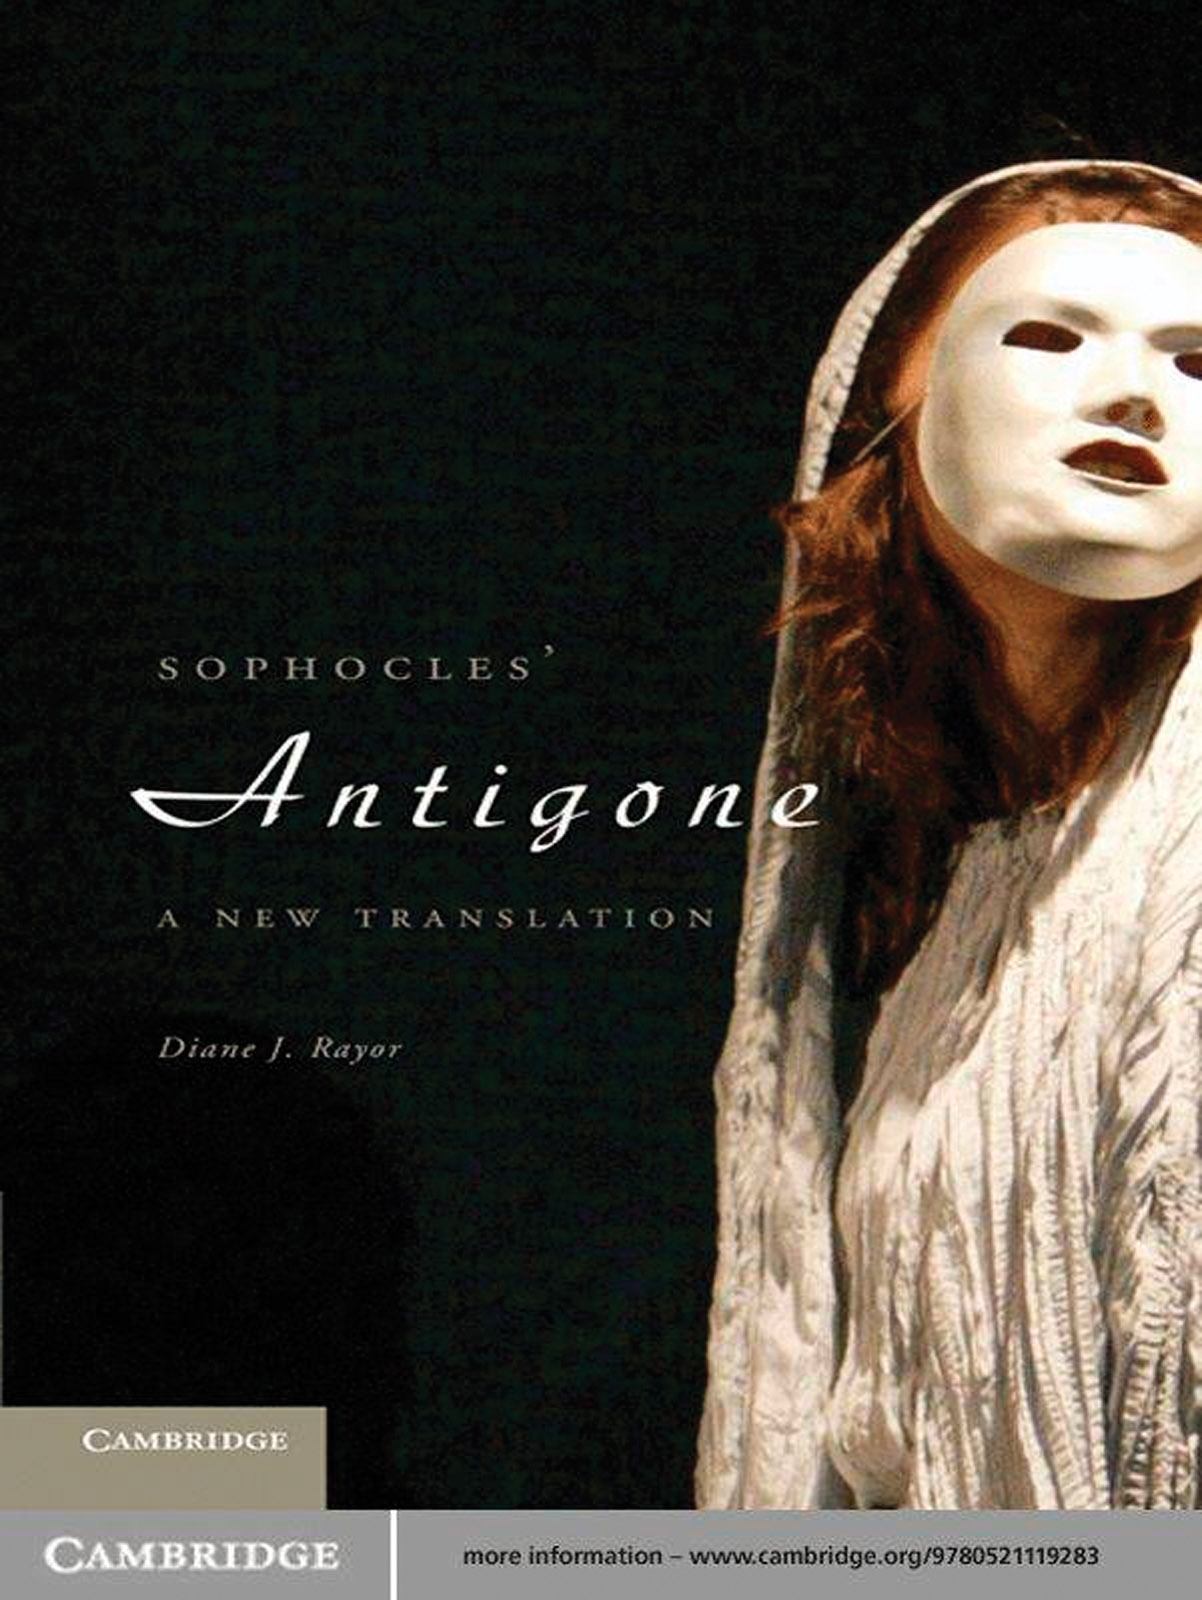 the role of the individual in sophocles antigone Among them is sophocles, the playwright, who technically pictures a variety of women's roles antigone is one of his masterworks, which precisely manifests most of the greek myths and culture the themes brought across by sophocles bear a close relation to the modern society.